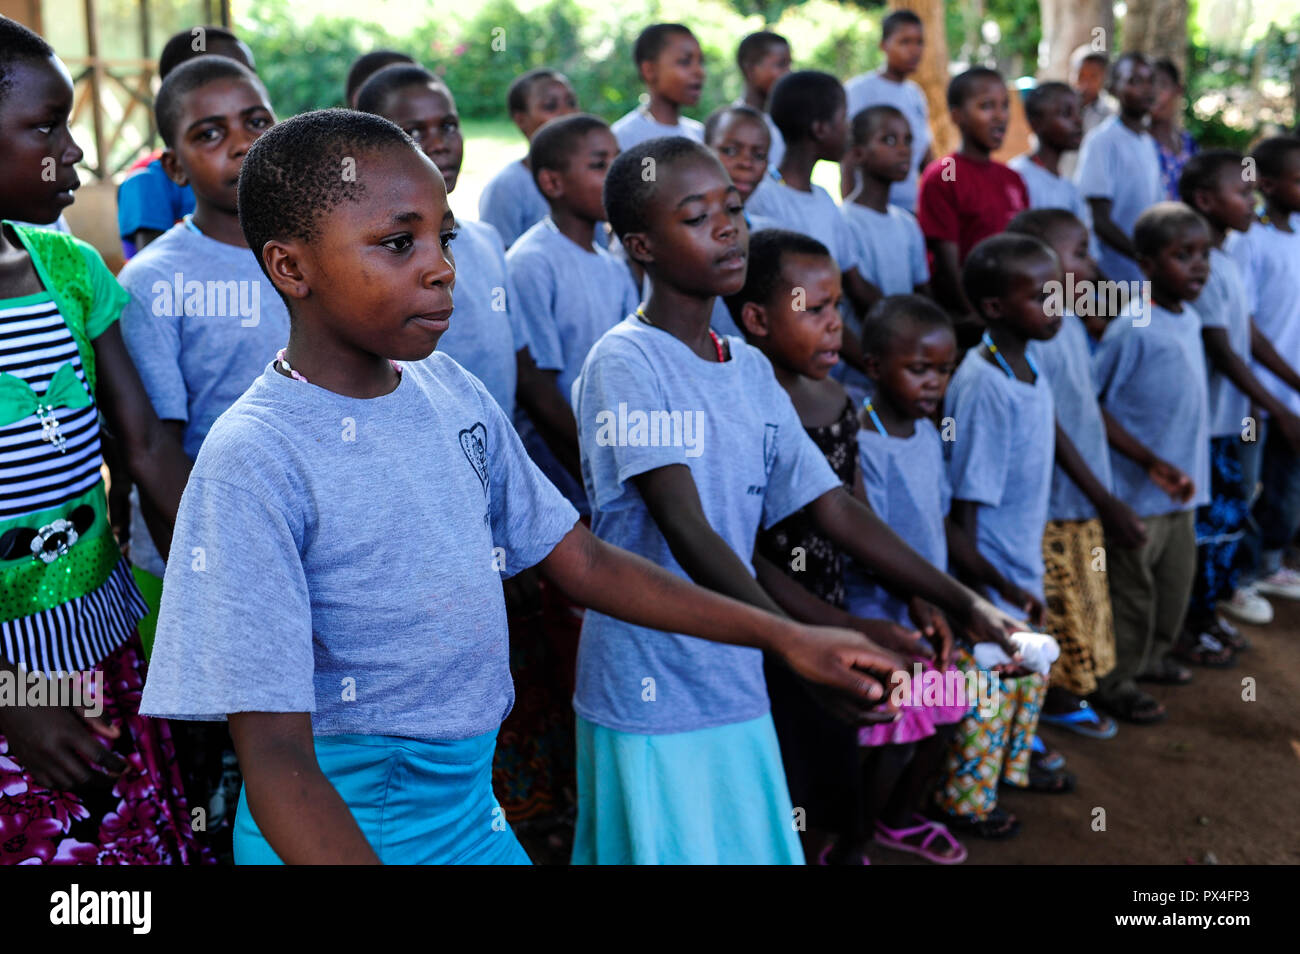 TANZANIA Musoma, JIPE MOYO a shelter of the catholic church for girls which escaped from their village to prevent FGM female genital mutilation and child marriage - Stock Image